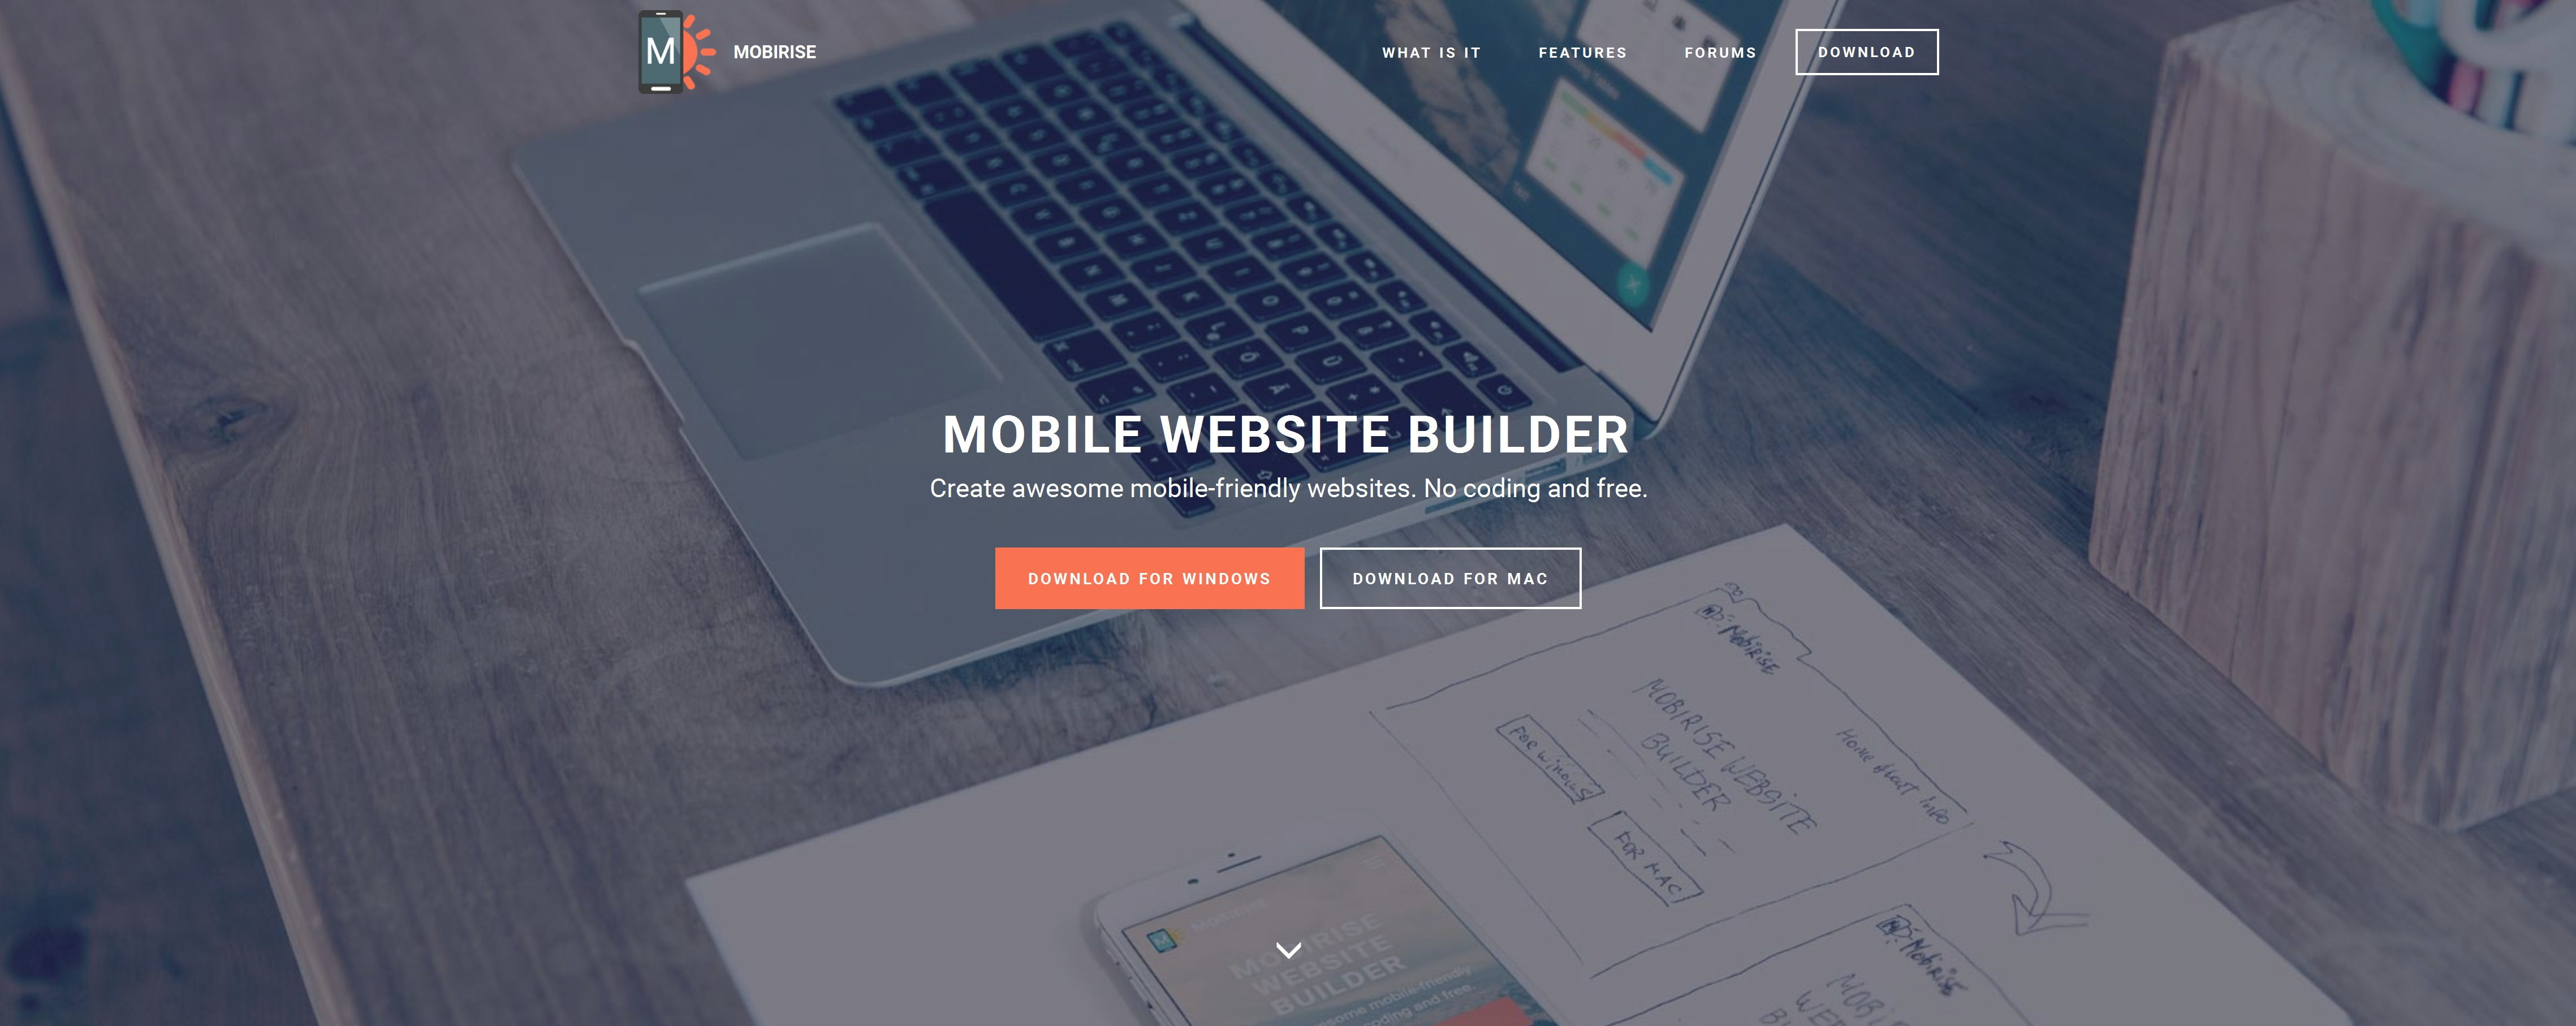 Best Mobile Website Builder Review